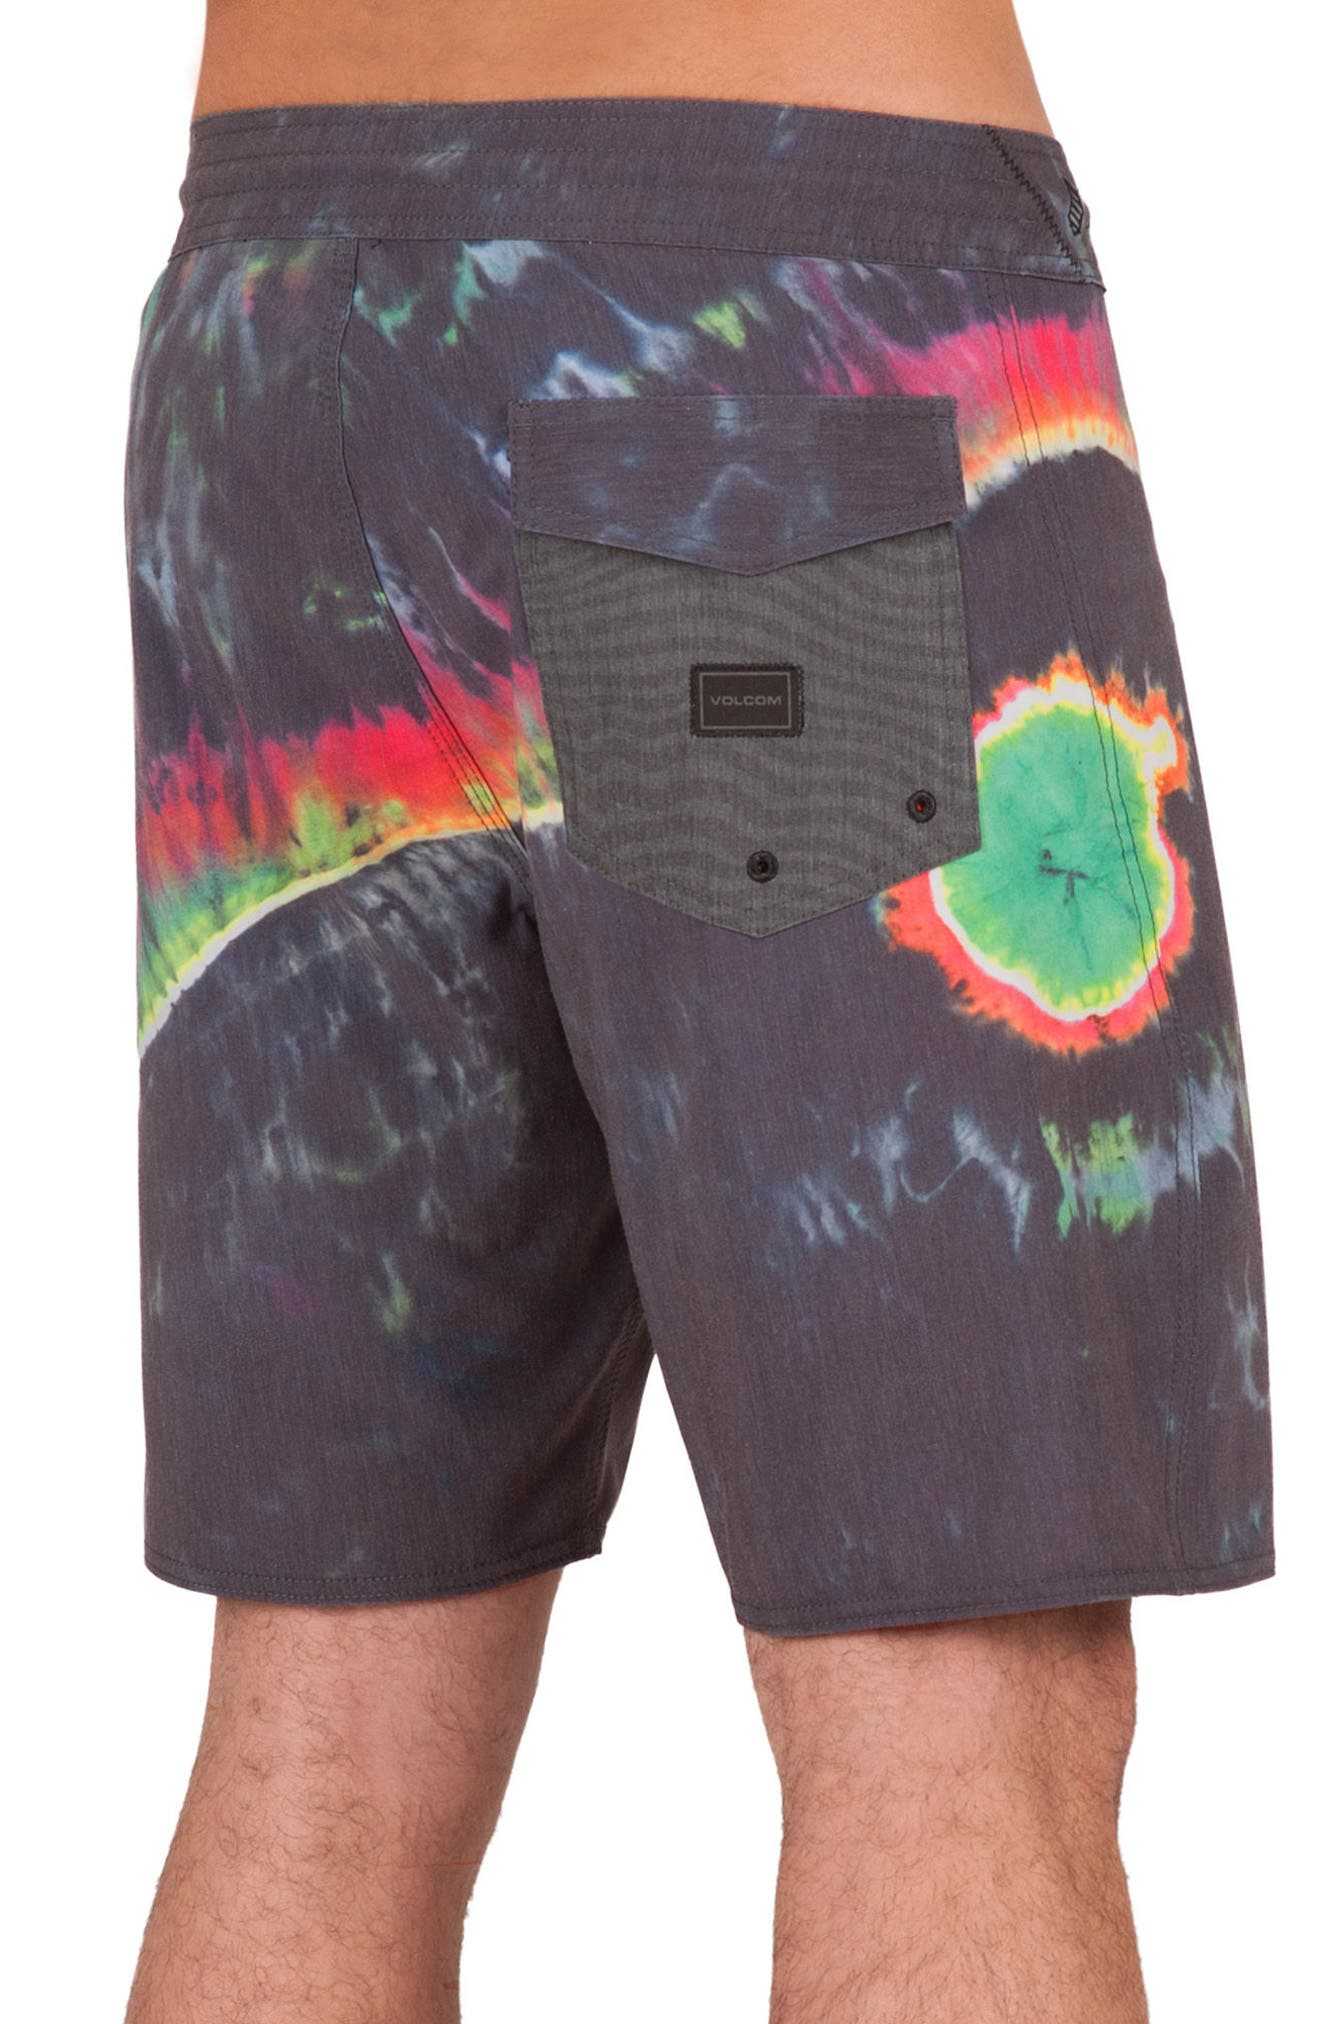 Yin Yang Slinger Board Shorts,                             Alternate thumbnail 2, color,                             002